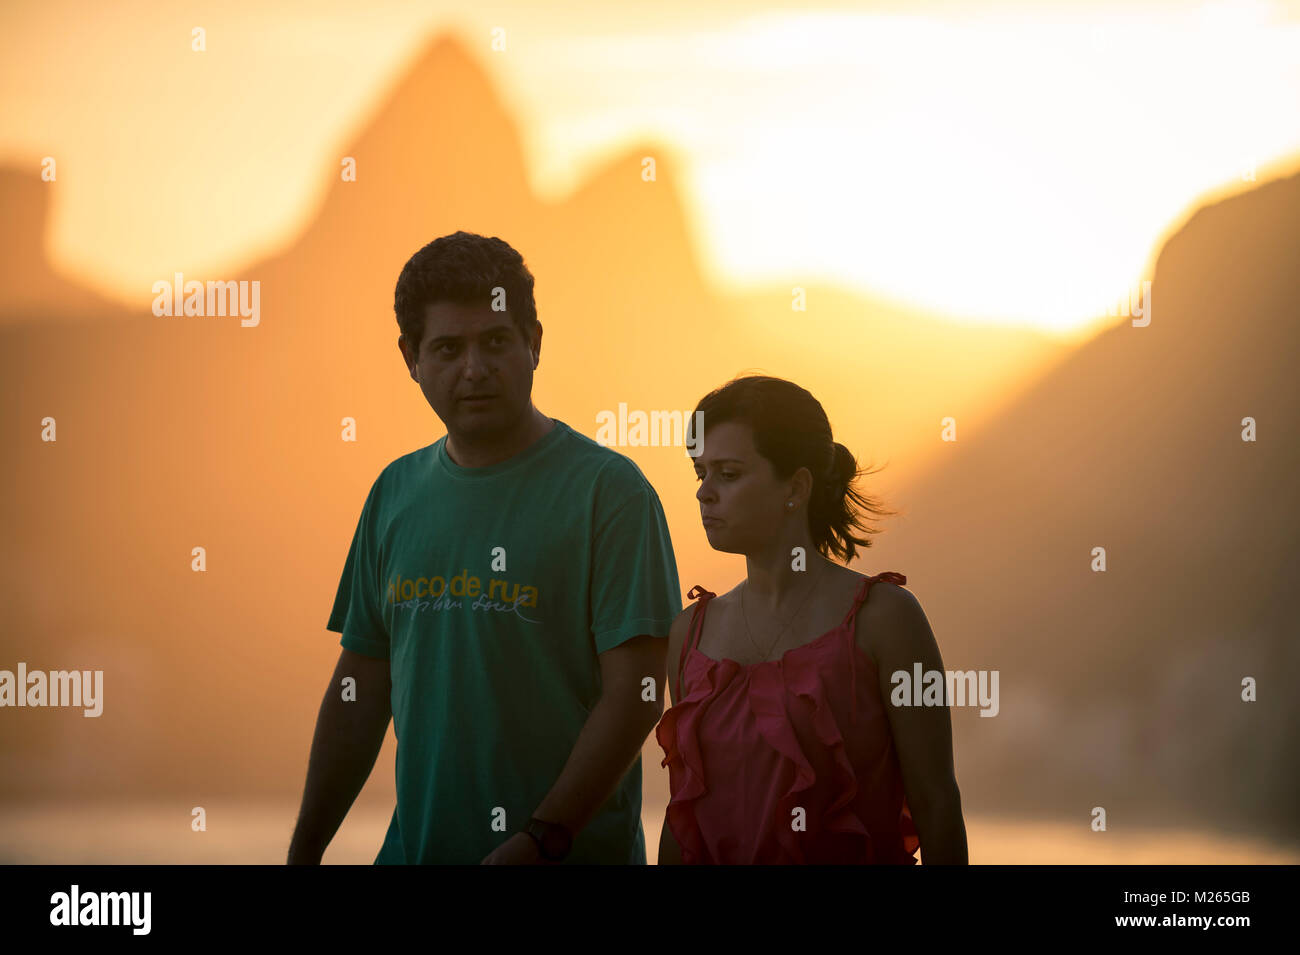 RIO DE JANEIRO - MARCH 20, 2017: A couple walks along the boardwalk at the Arpoador lookout point past a sunset - Stock Image